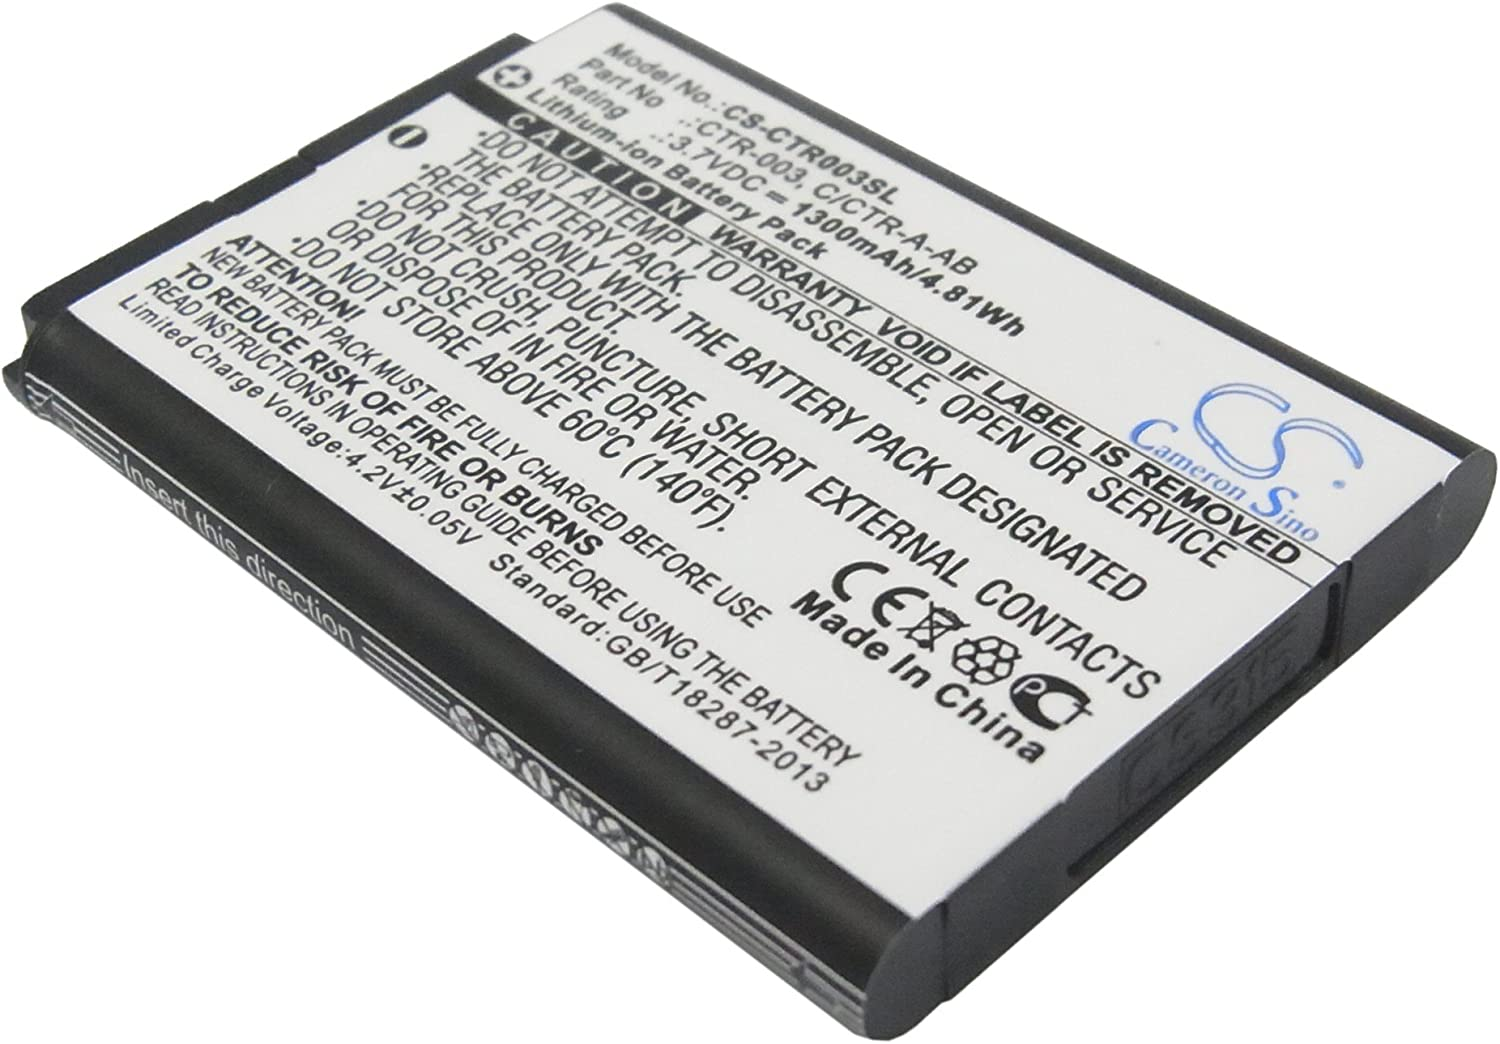 GAXI gift Battery for Nintendo 2DS CTR-001 XL MIN-CTR JAN-001 3DS Max 64% OFF